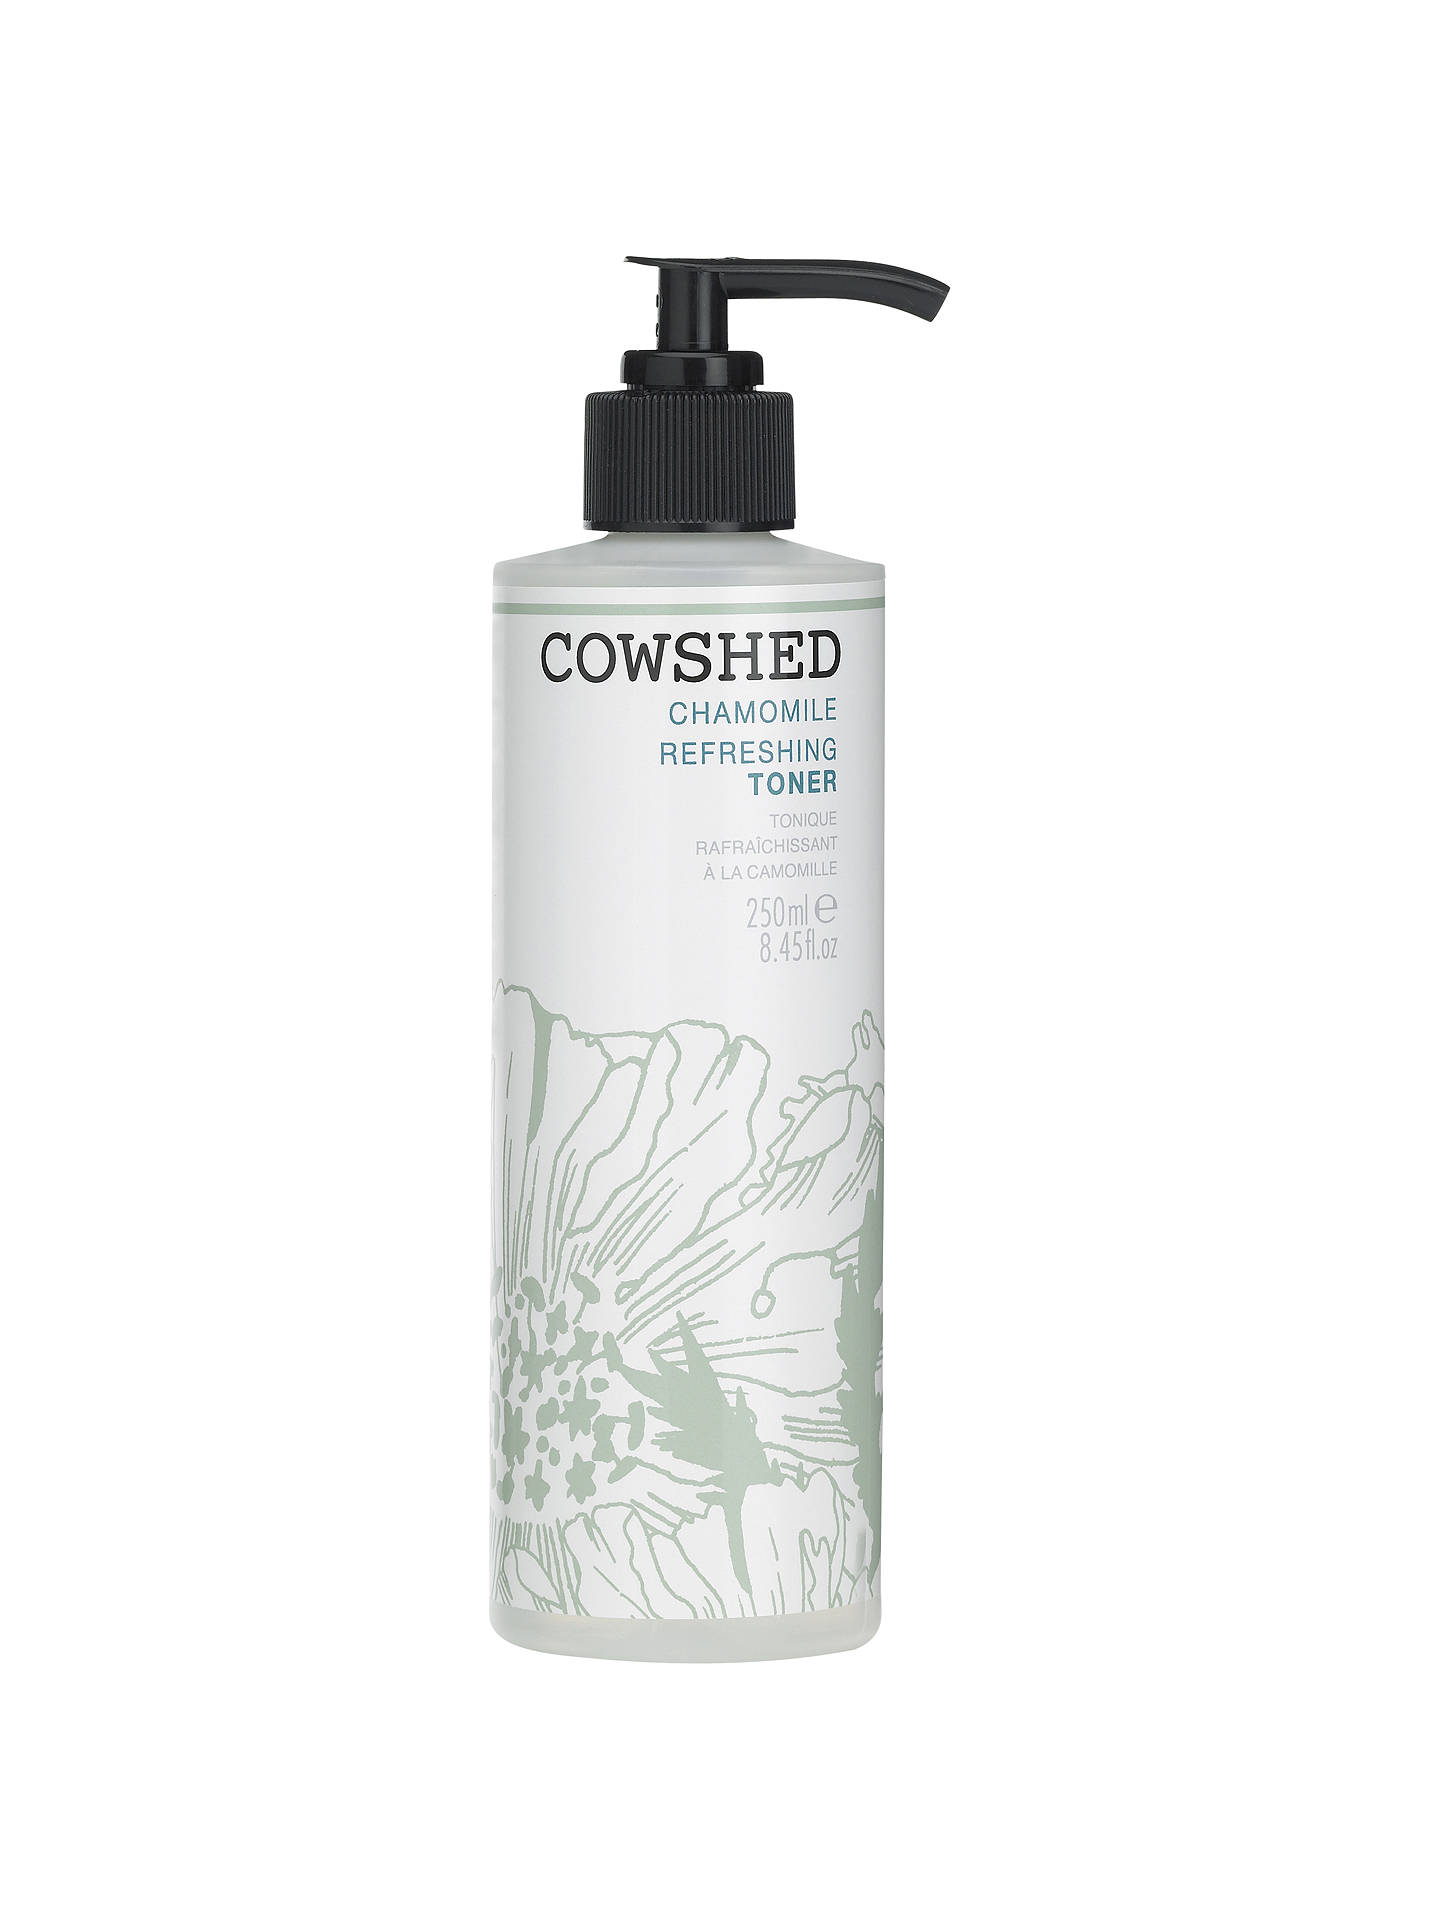 BuyCowshed Chamomile Refreshing Toner, 250ml Online at johnlewis.com